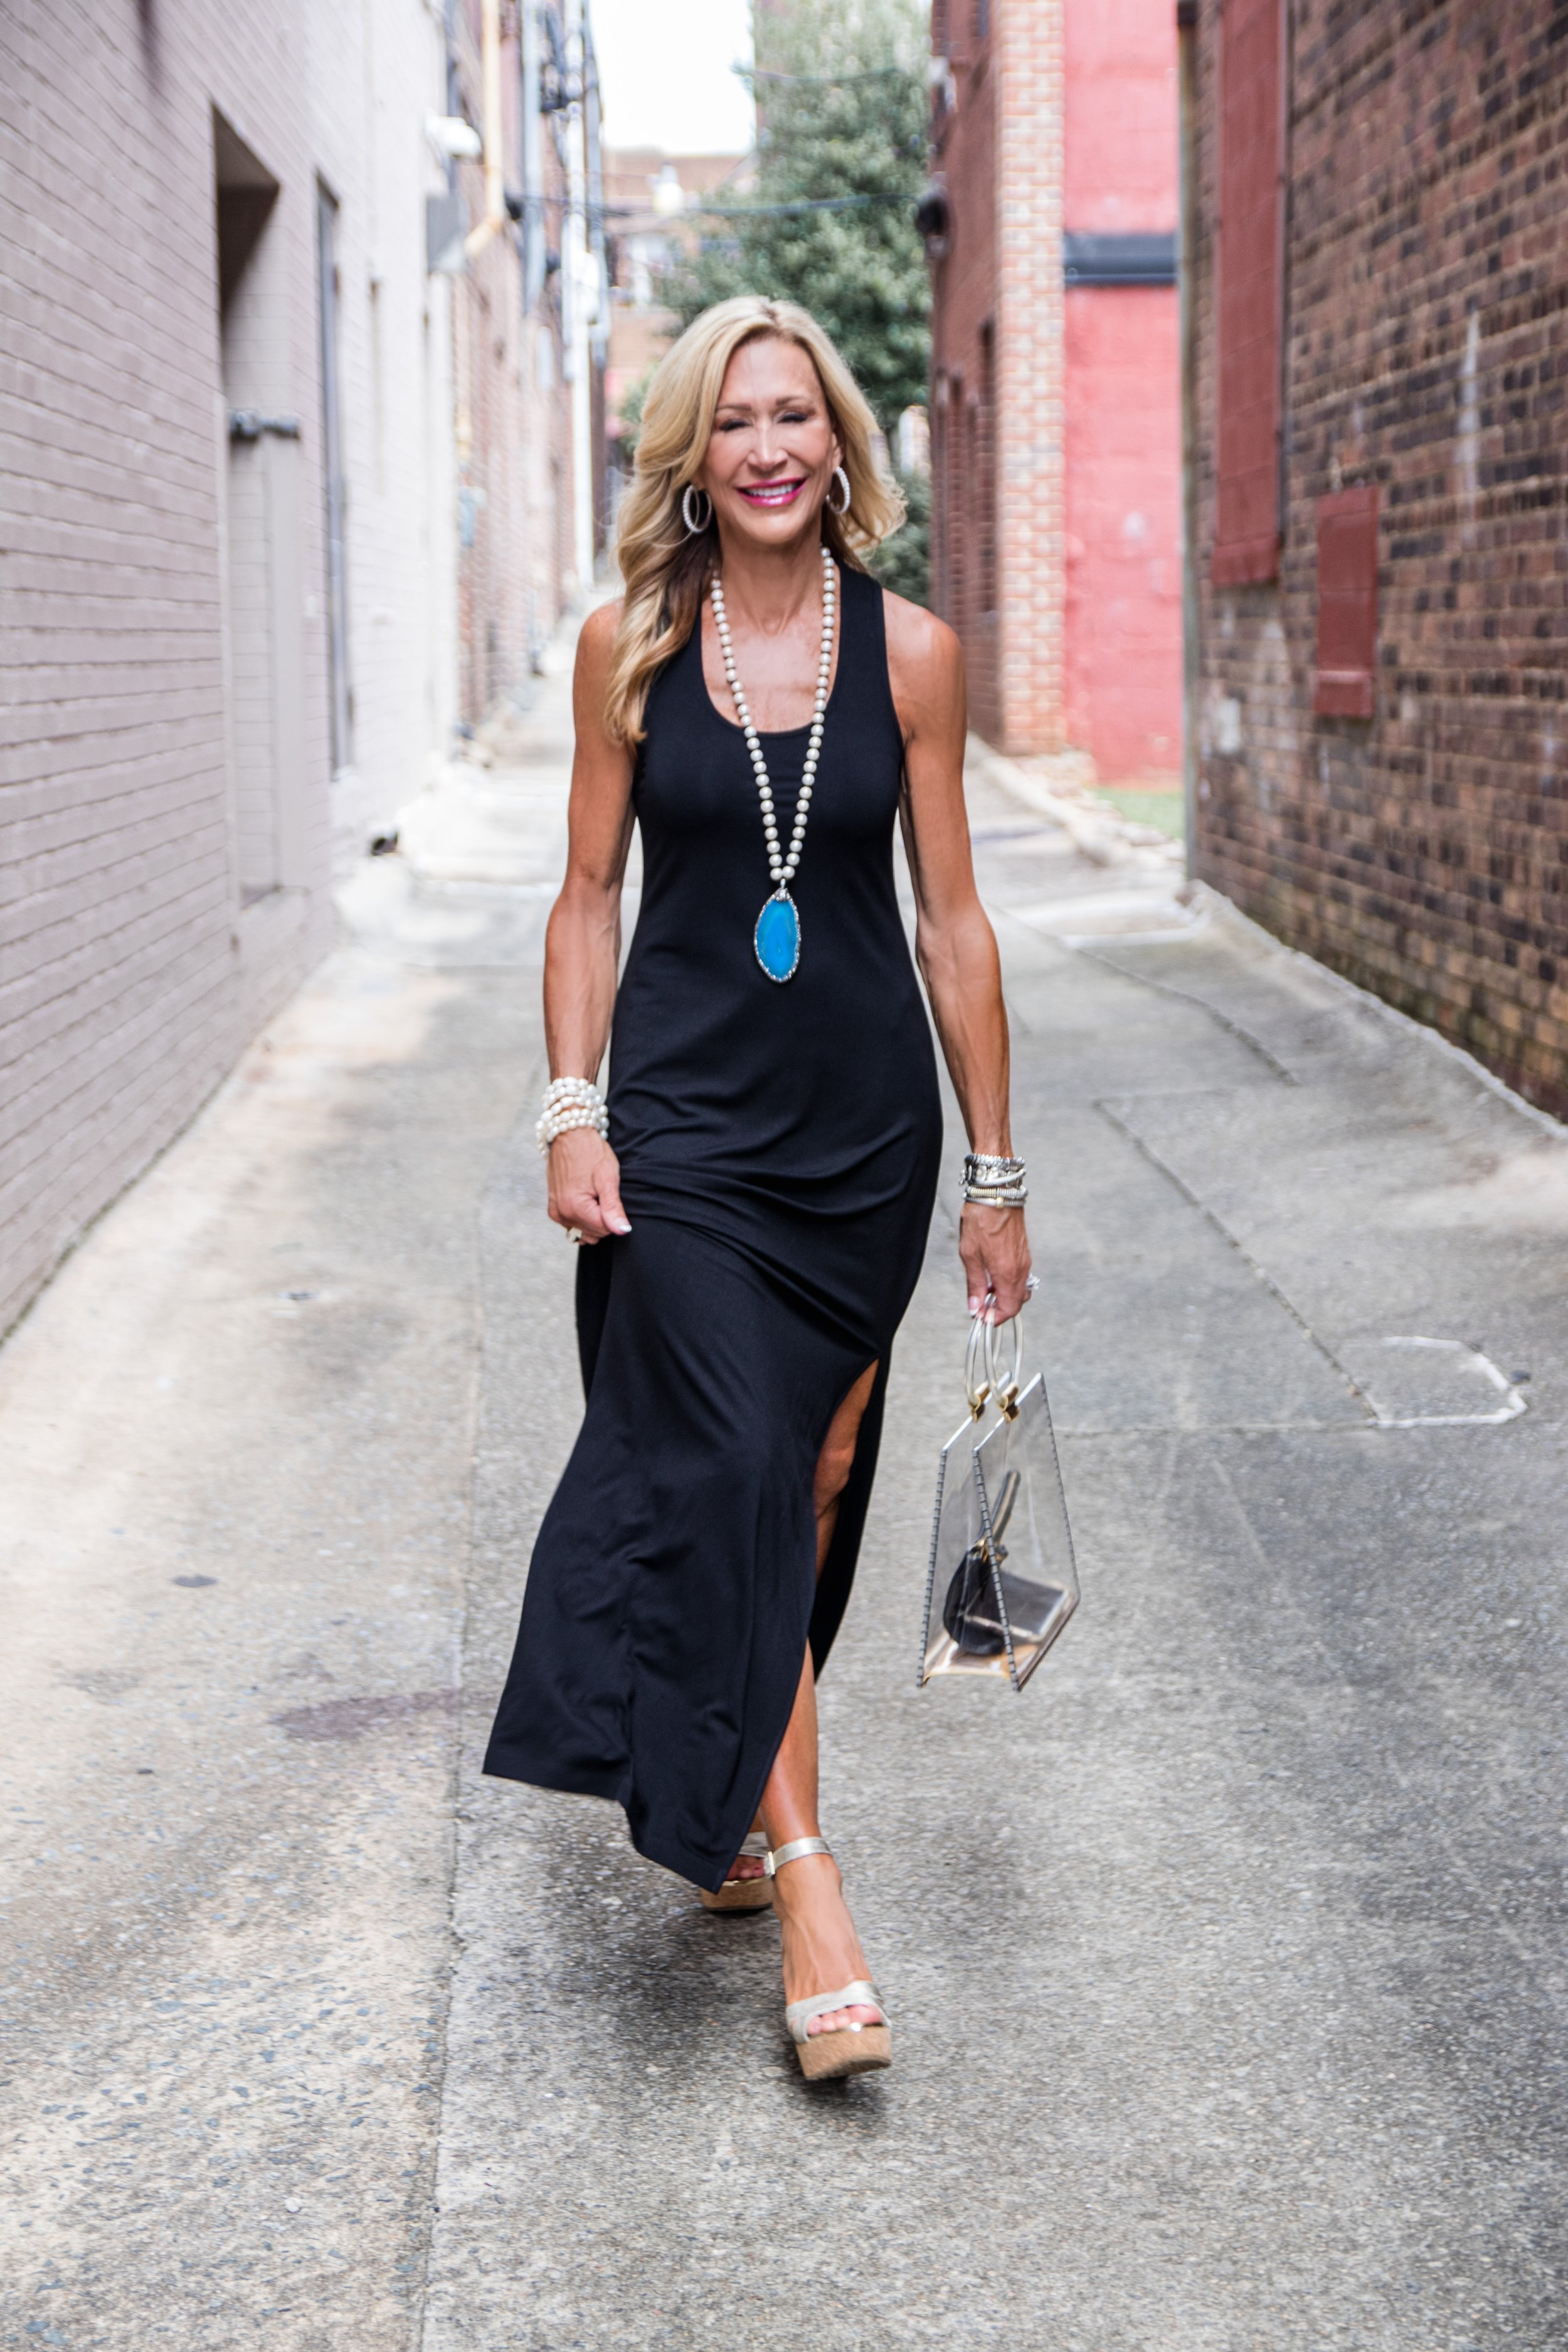 Long black dress with Julie Miles necklace - Summer Style by Crazy Blonde Life